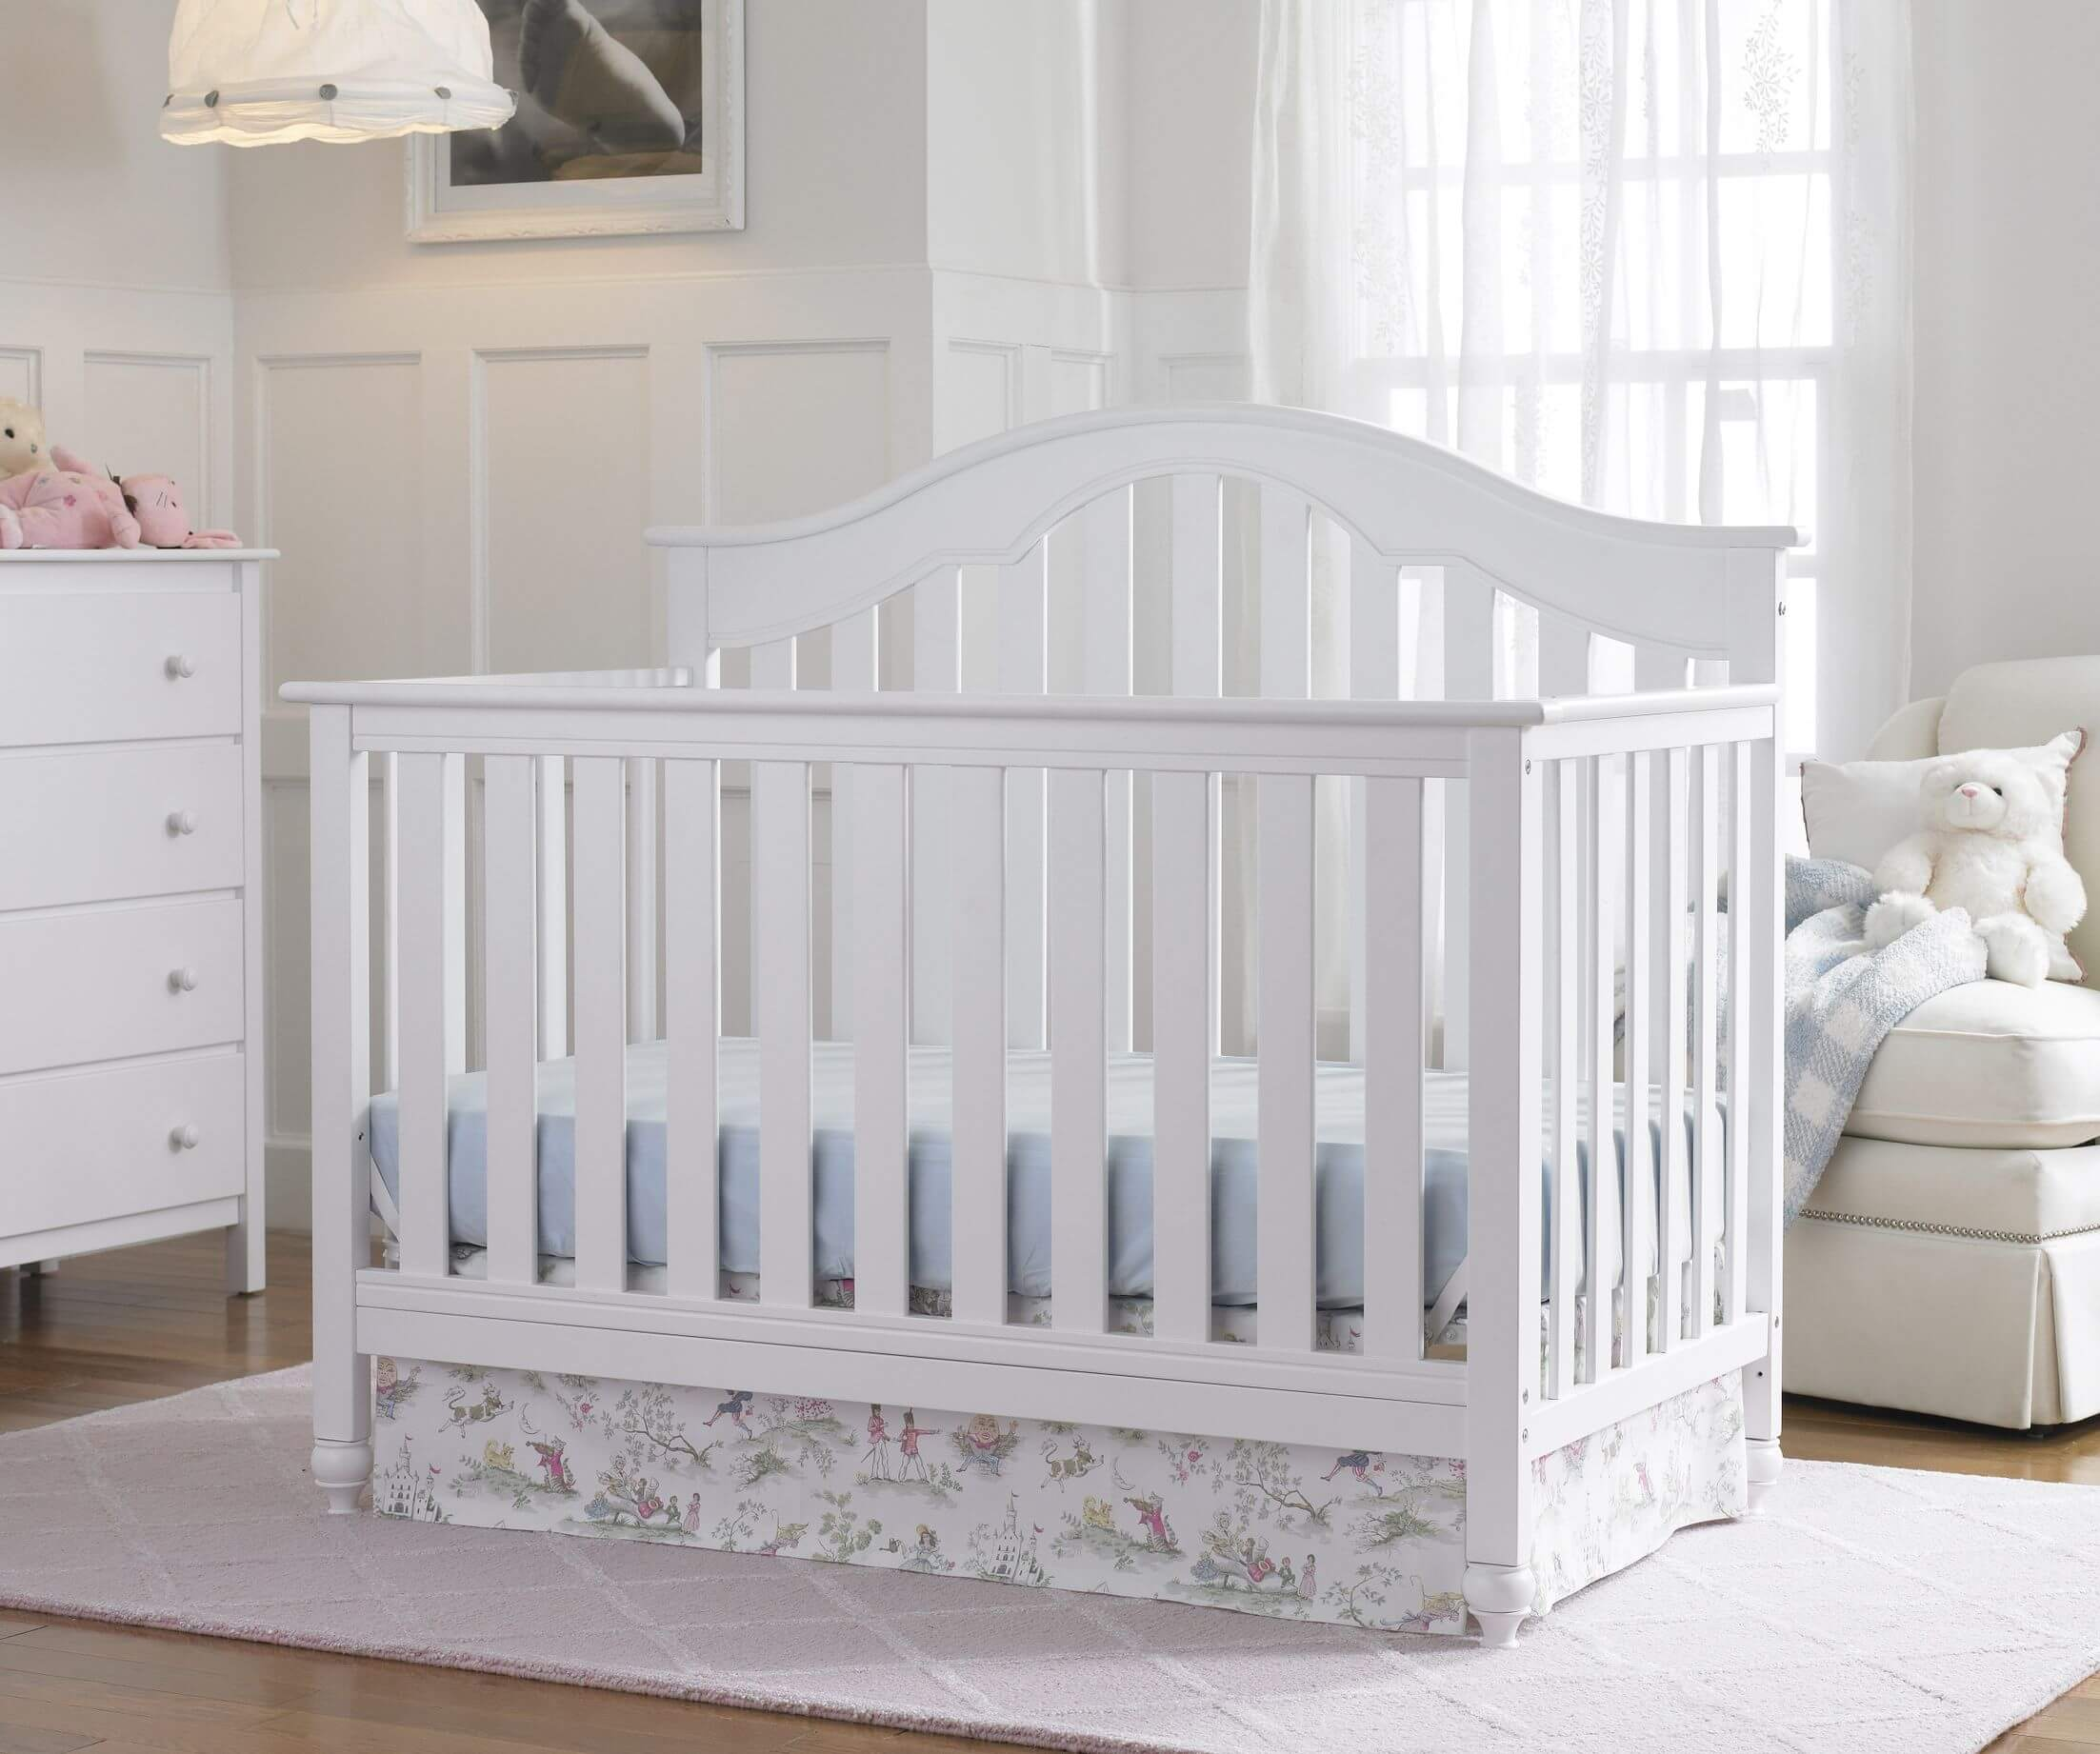 Baby cribs with matching dresser - Pure White Tones On Wood Crib And Matching Dresser Walls And Drapes Unify This